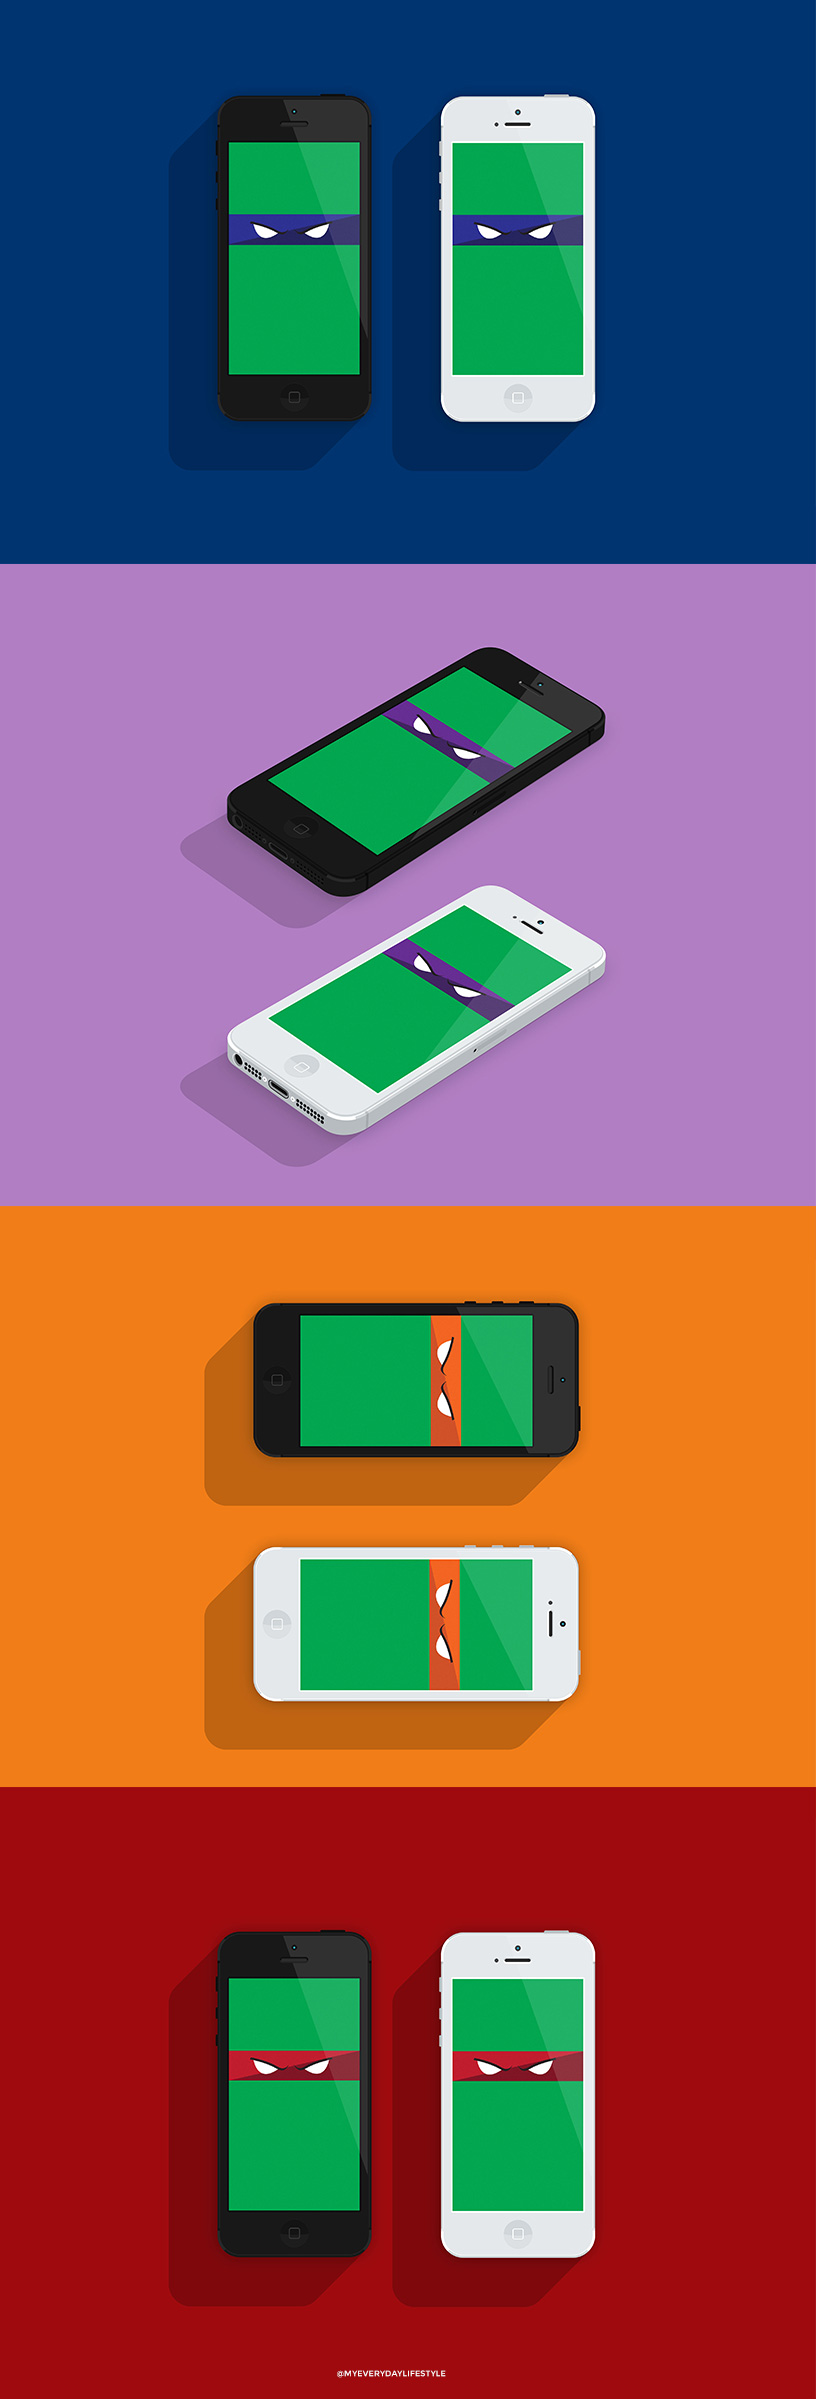 Download here iPhone only(email if you need android size):   Leonardo   |   Raphael   |   Donatello   |   Michelangelo